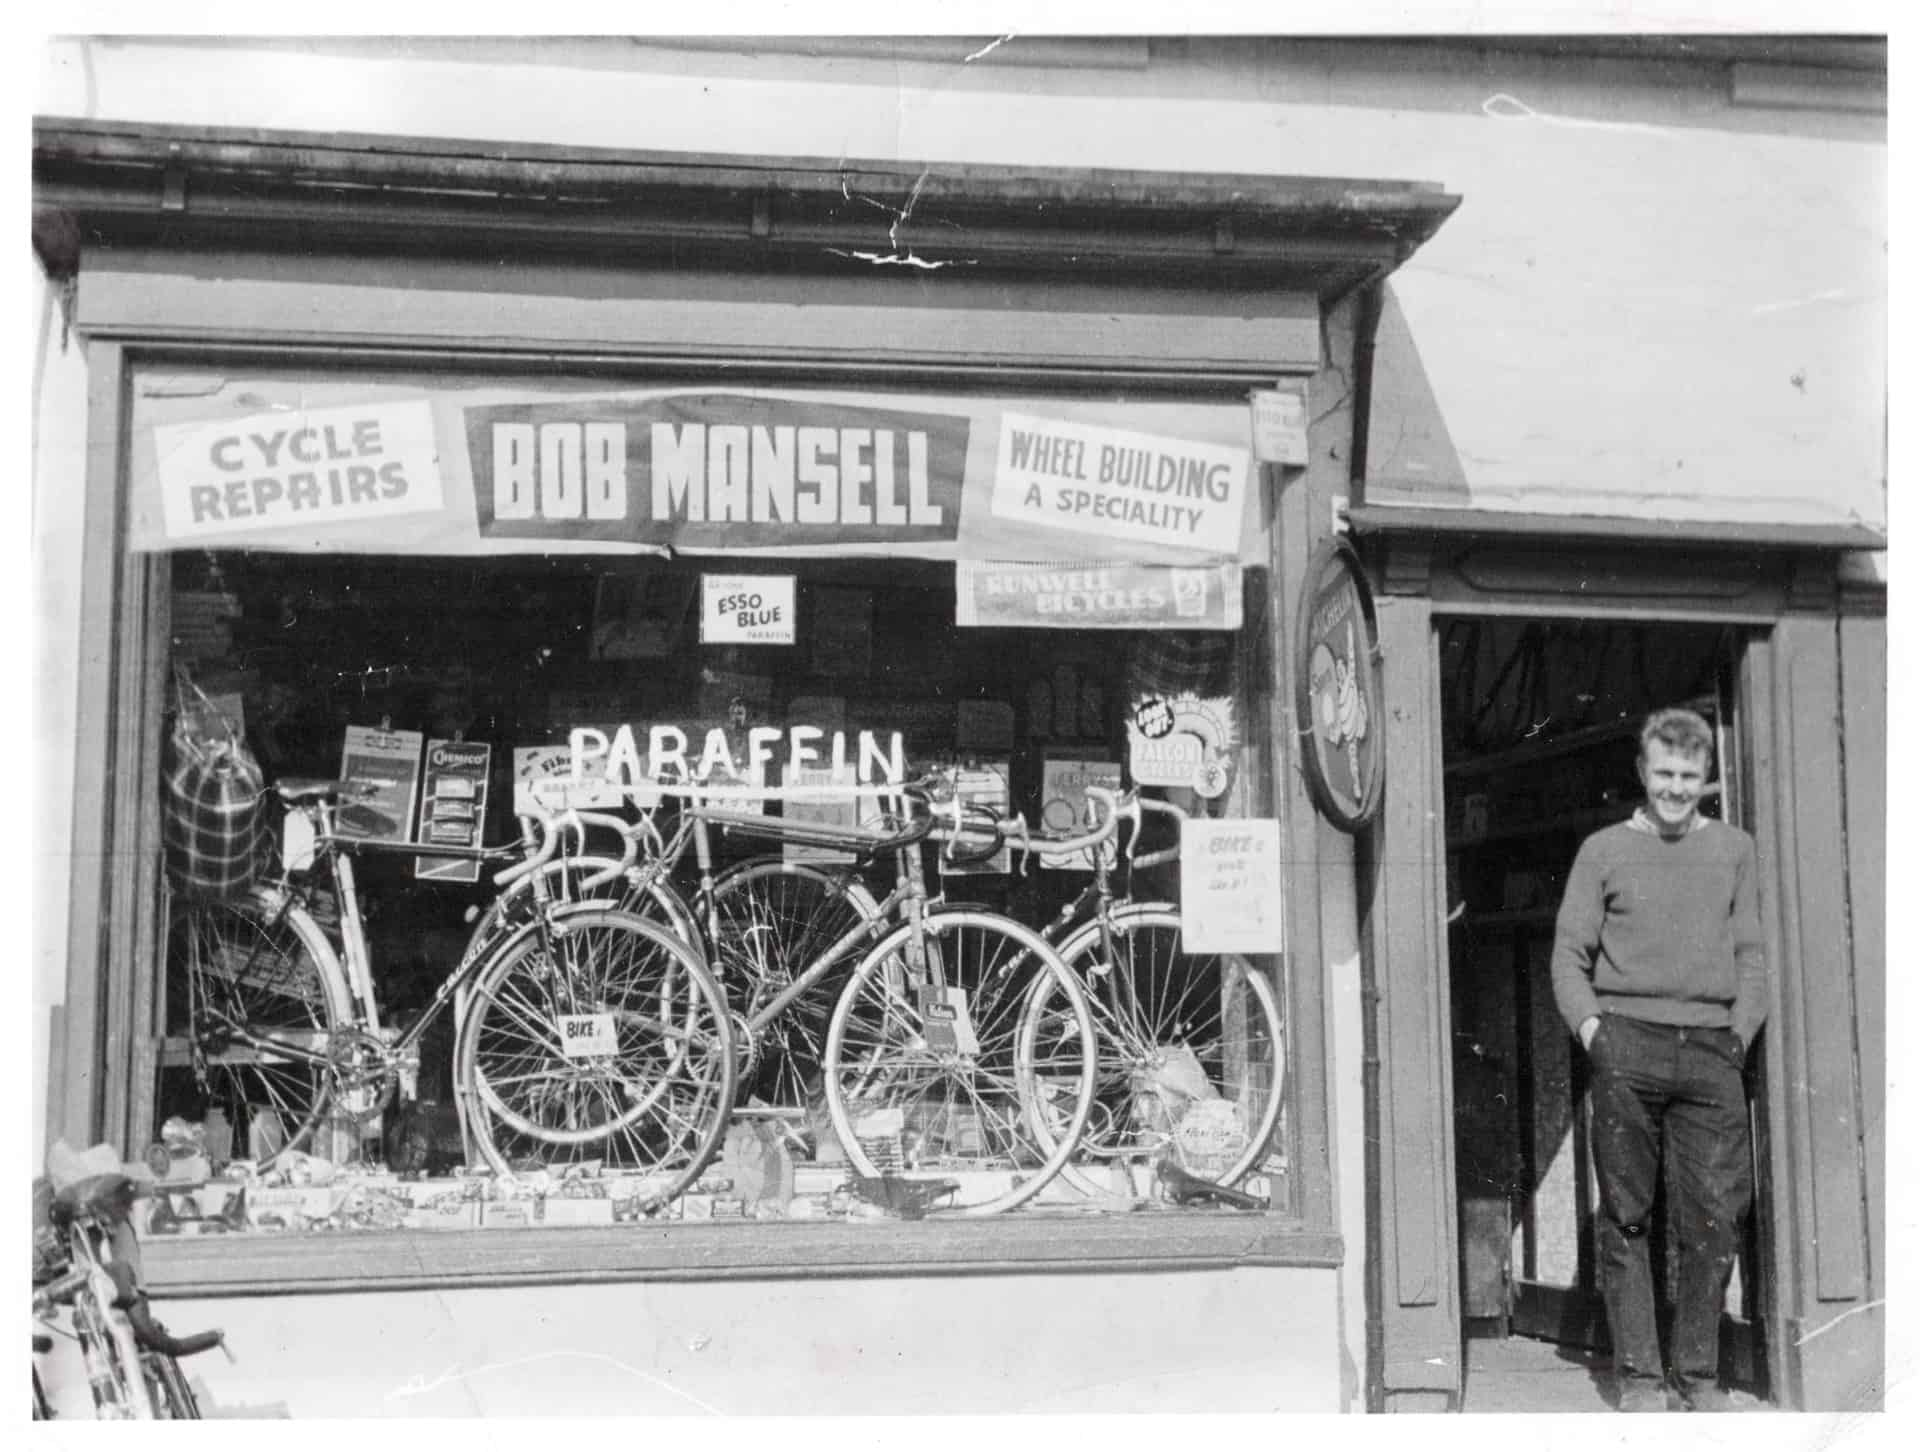 "Bob Mansell Cycles 504 Oldbury Road, Smethwick, Staffs. Bob's daughter Juanita remembers ""Falcon bikes, probably Brookes saddle in the window. Grandad and dad used to sell Esso Blue parafin out of the back of the Morris Traveller. The floor boards were bare and there was a cellar with an opening at the front of the shop. Dad was always repairing wheels in the back, I remember the big tin tubs of lube and ball bearings rolling around, they were so little."""